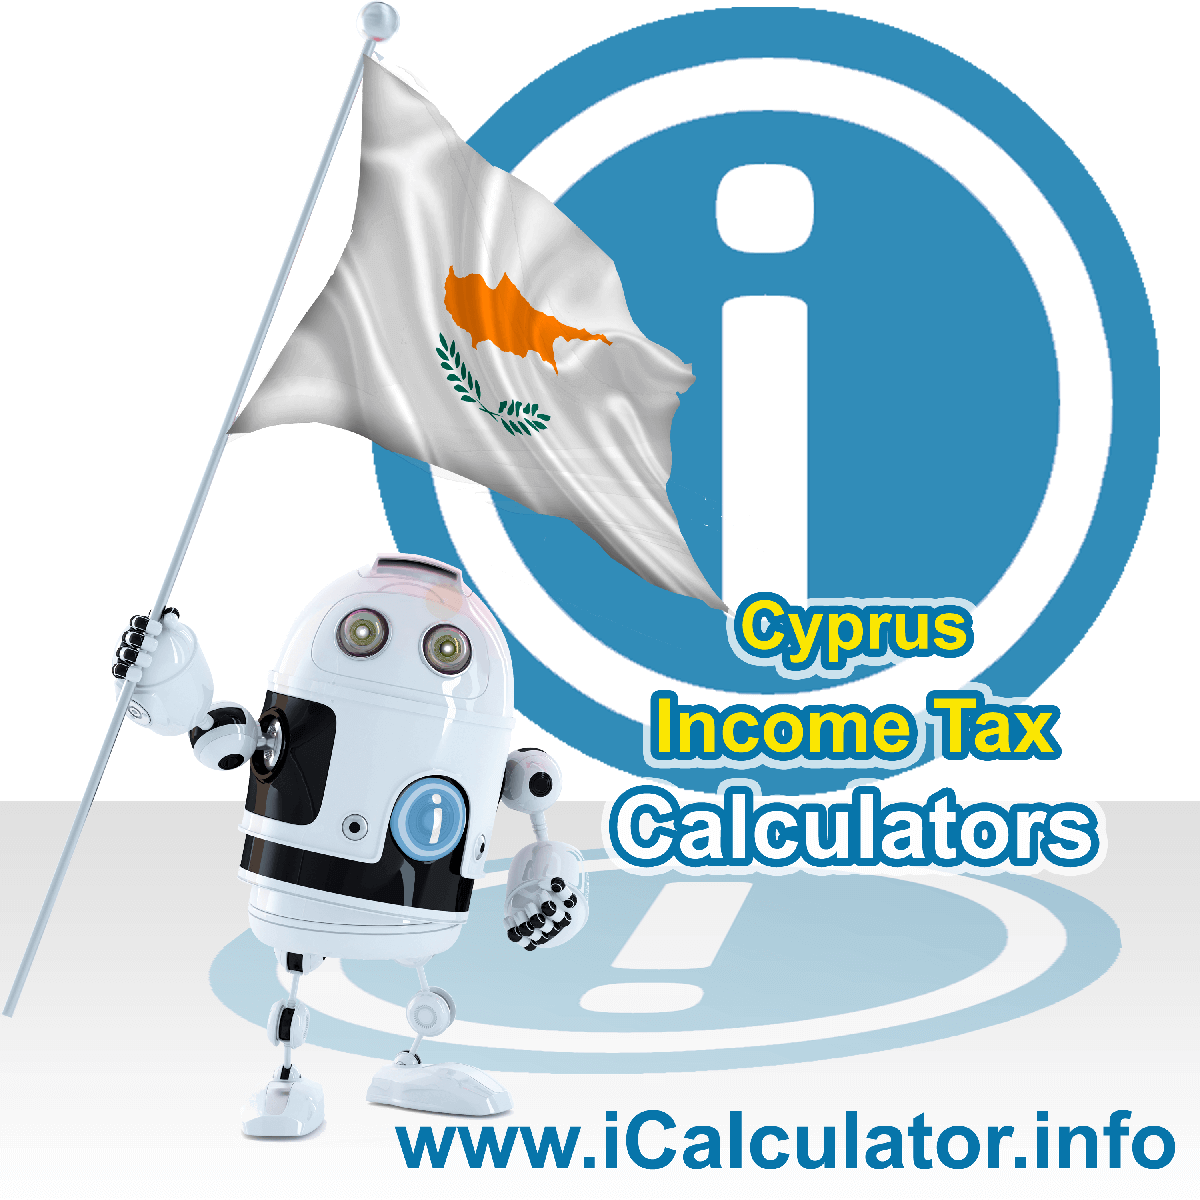 Cyprus Income Tax Calculator. This image shows a new employer in Cyprus calculating the annual payroll costs based on multiple payroll payments in one year in Cyprus using the Cyprus income tax calculator to understand their payroll costs in Cyprus in 2021